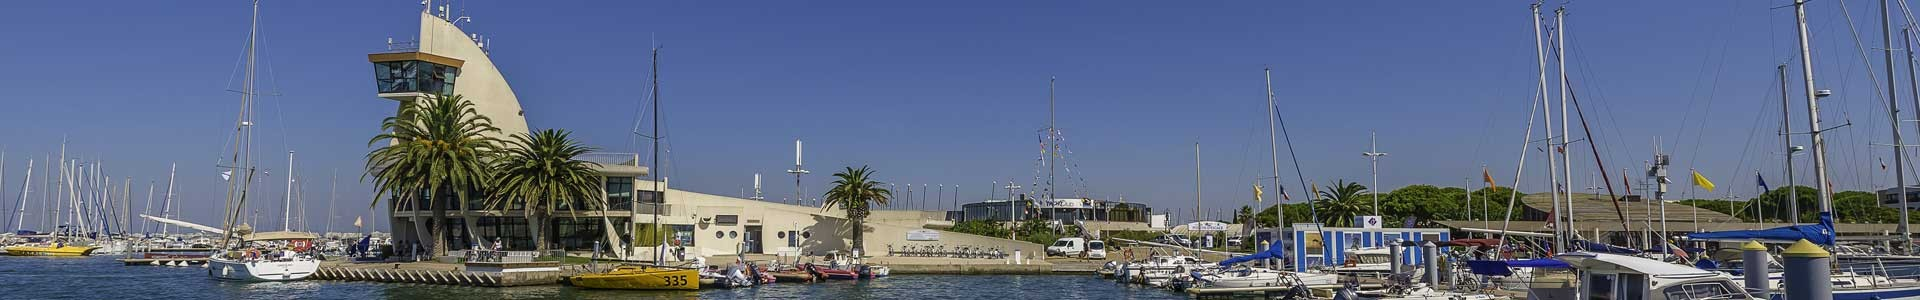 capitainerie-port-camargue-2234